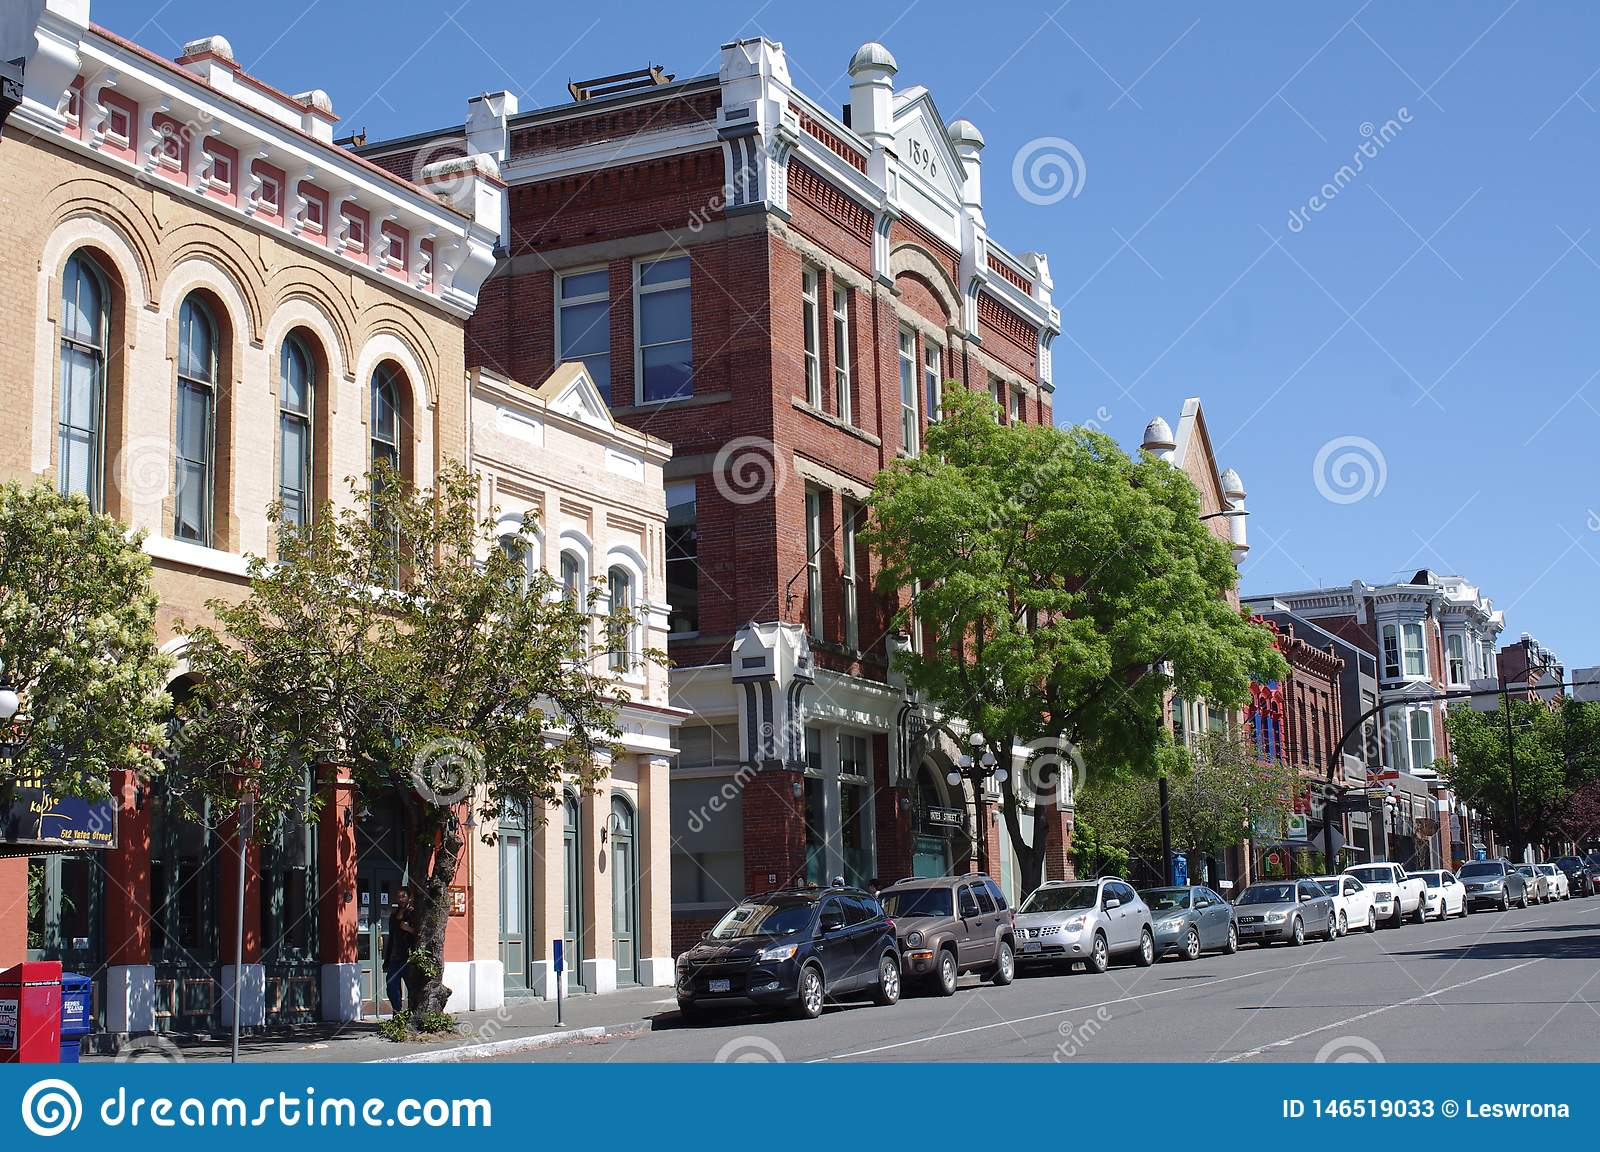 Historic buildings in downtown Victoria, Canada